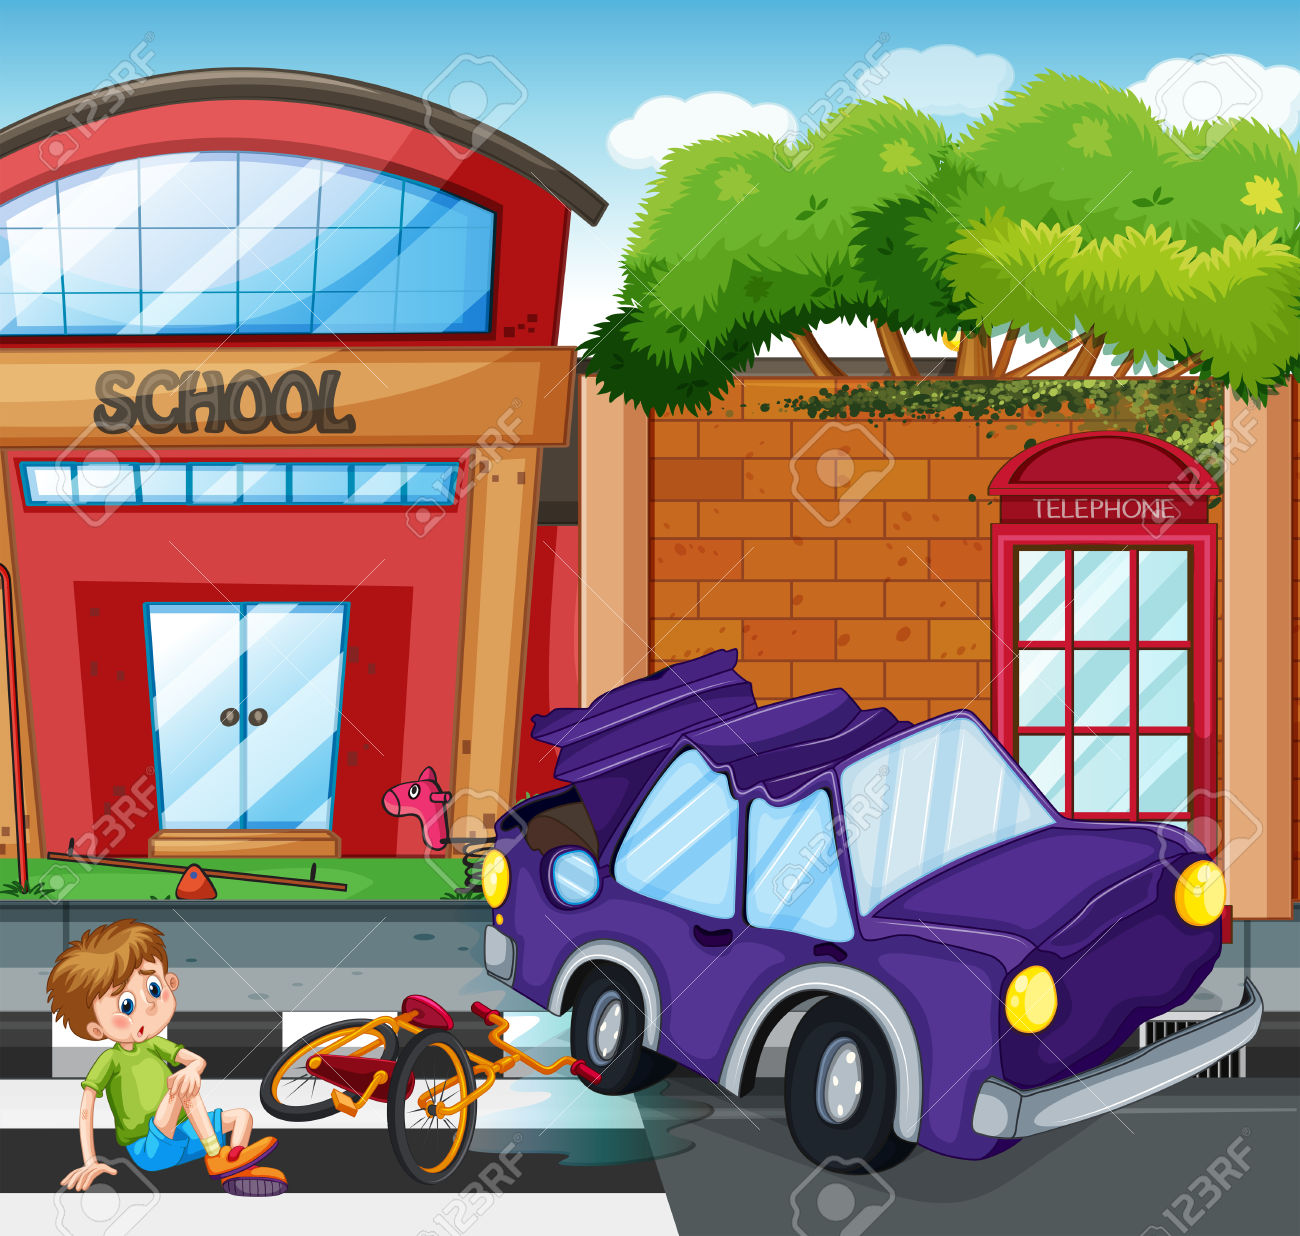 Accident Scene With Boy Getting Hurt Illustration Royalty Free.